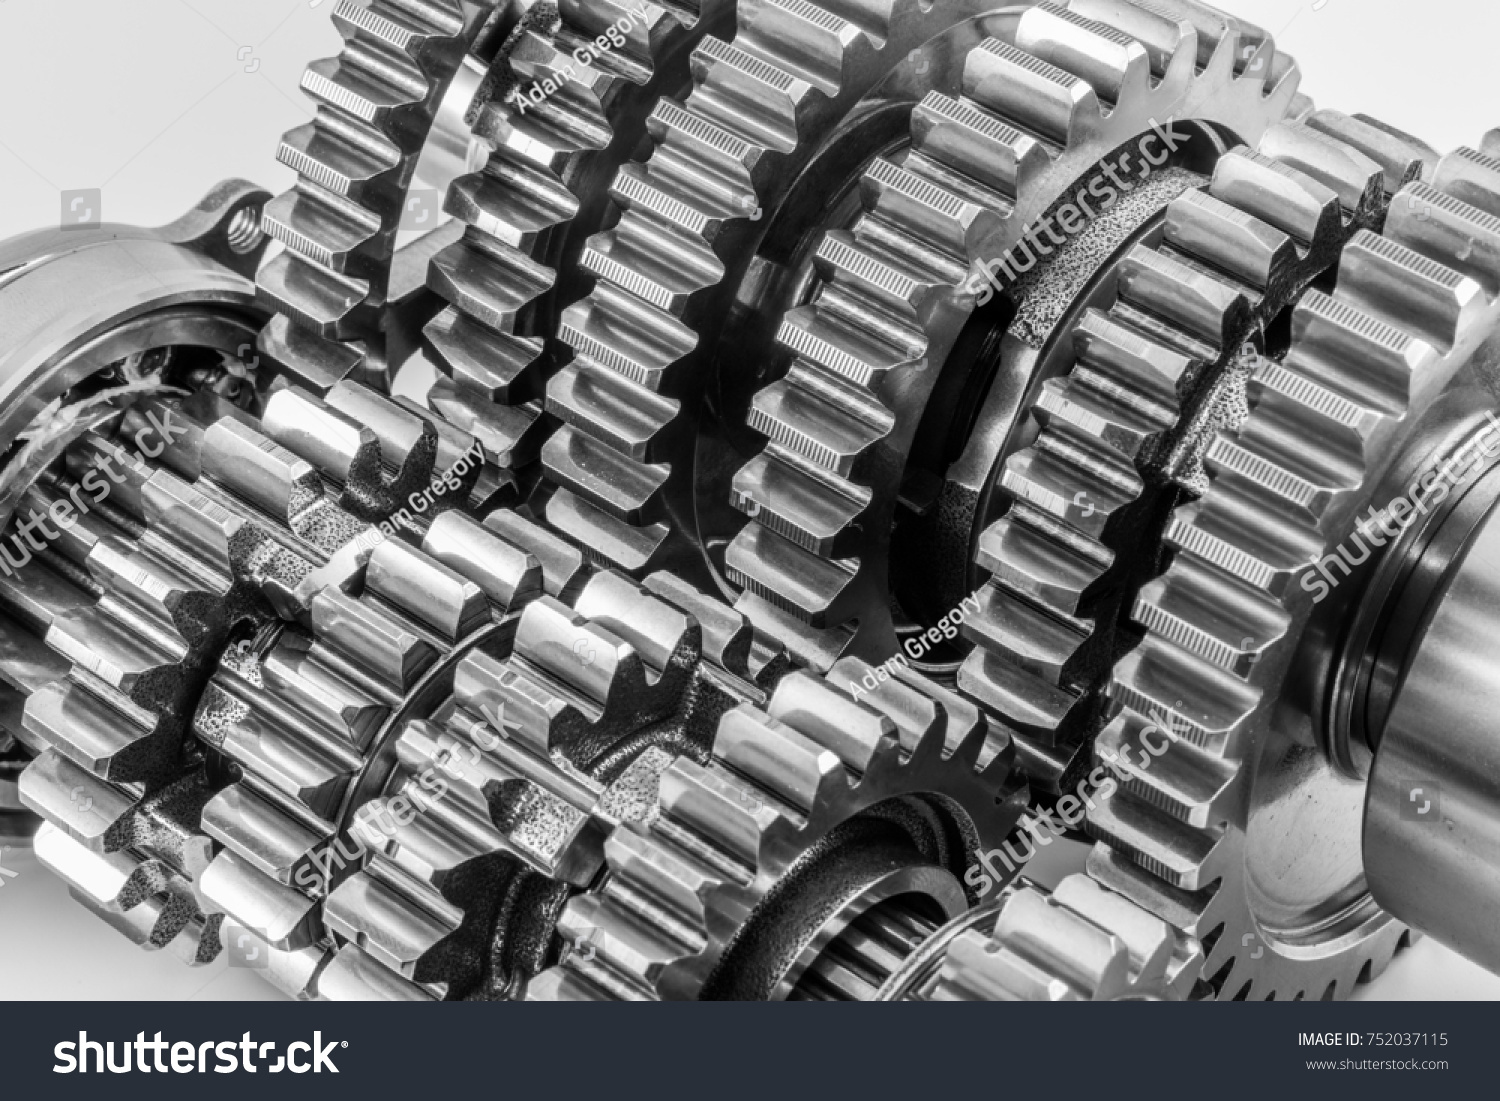 hight resolution of motorcycle race gearbox